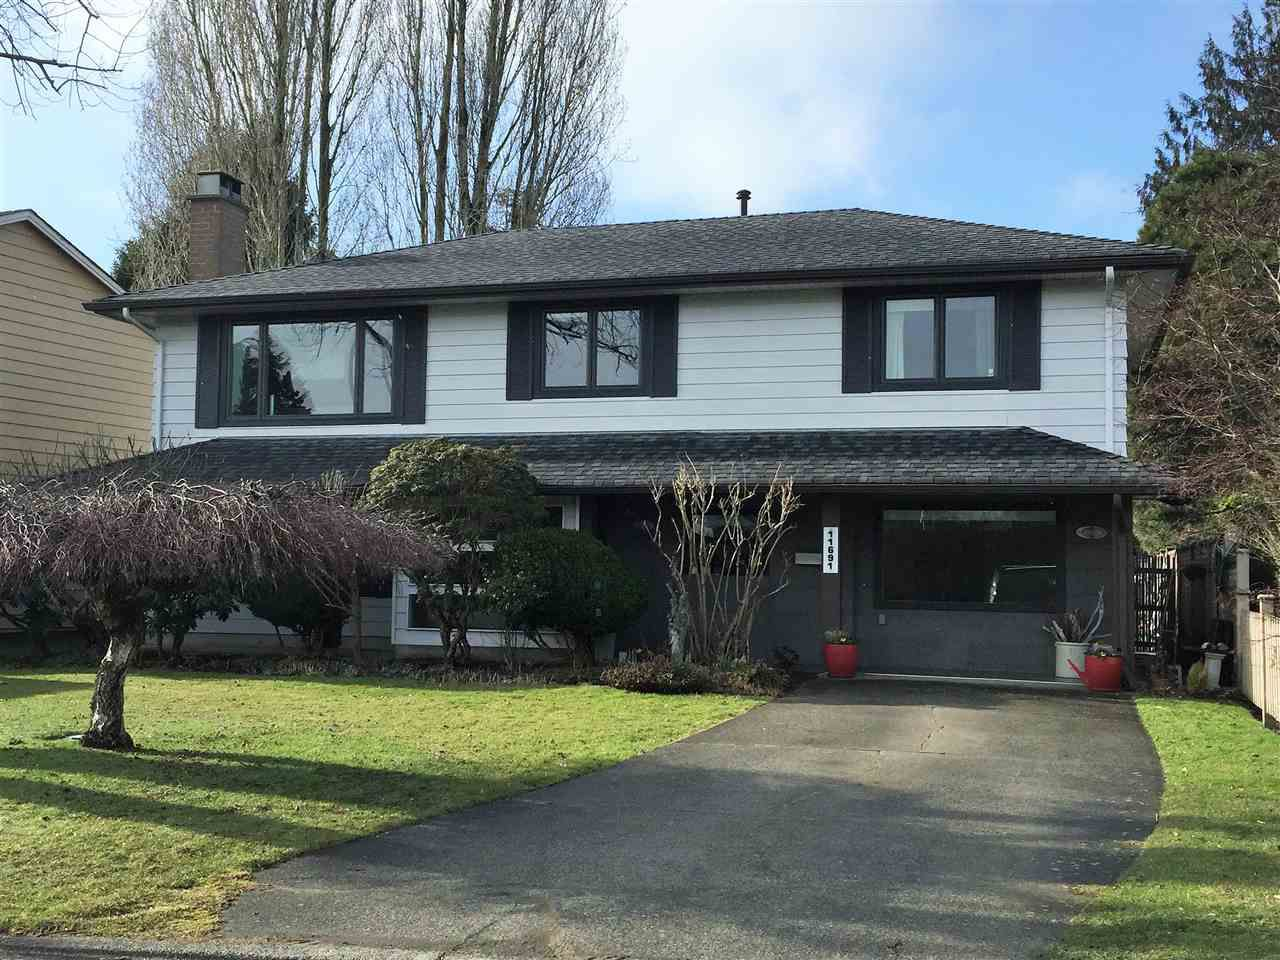 """Main Photo: 11691 TRUMPETER Drive in Richmond: Westwind House for sale in """"WESTWIND"""" : MLS®# R2142289"""